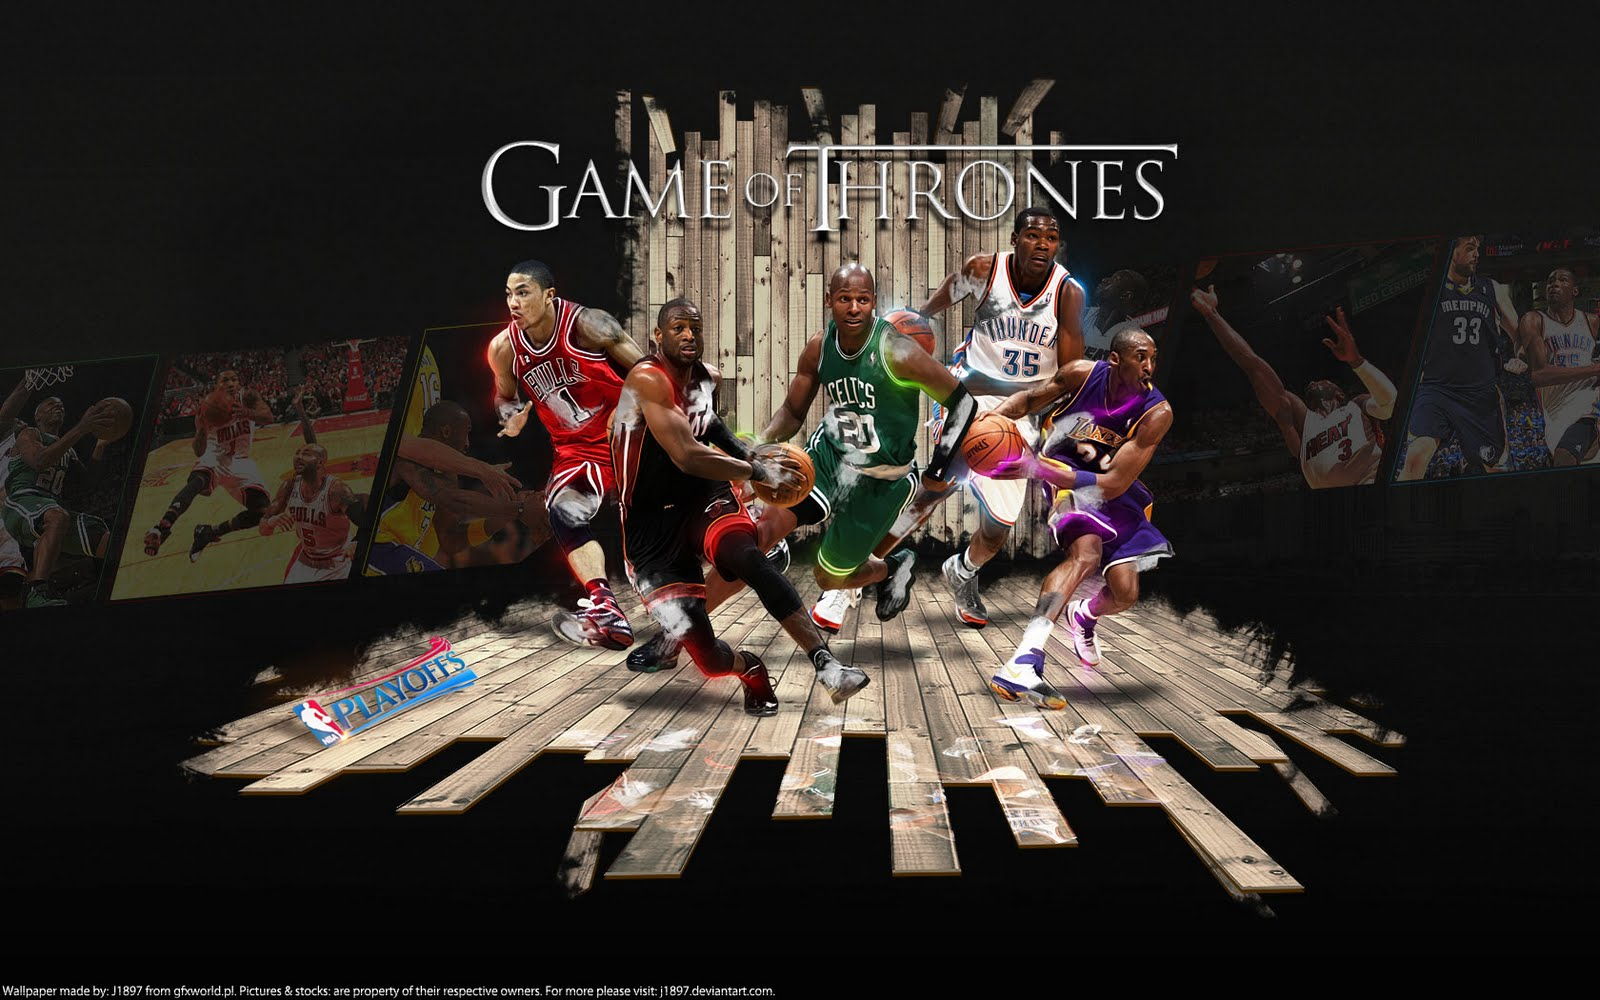 http://4.bp.blogspot.com/-GwM6zjsioFw/Tj7kj4hk5JI/AAAAAAAABTI/sjyxiwUt_UA/s1600/2011-NBA-Playoffs-Game-Of-Thrones-Widescree-Wallpaper.jpg